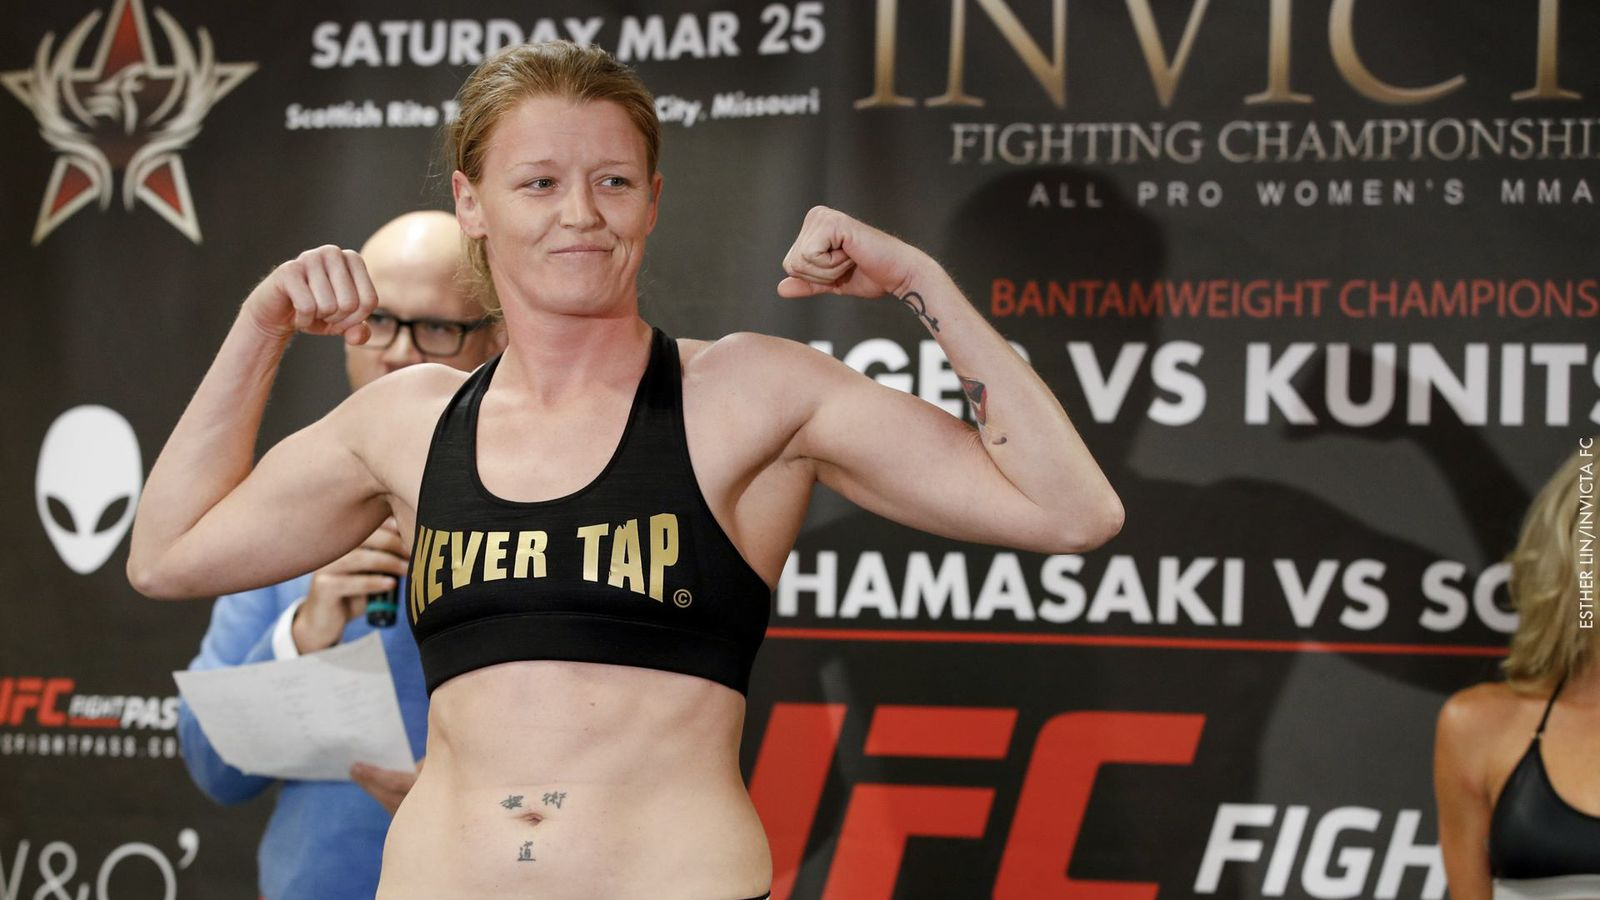 Tonya Evinger thinks the UFC is 'missing the boat' by not signing her